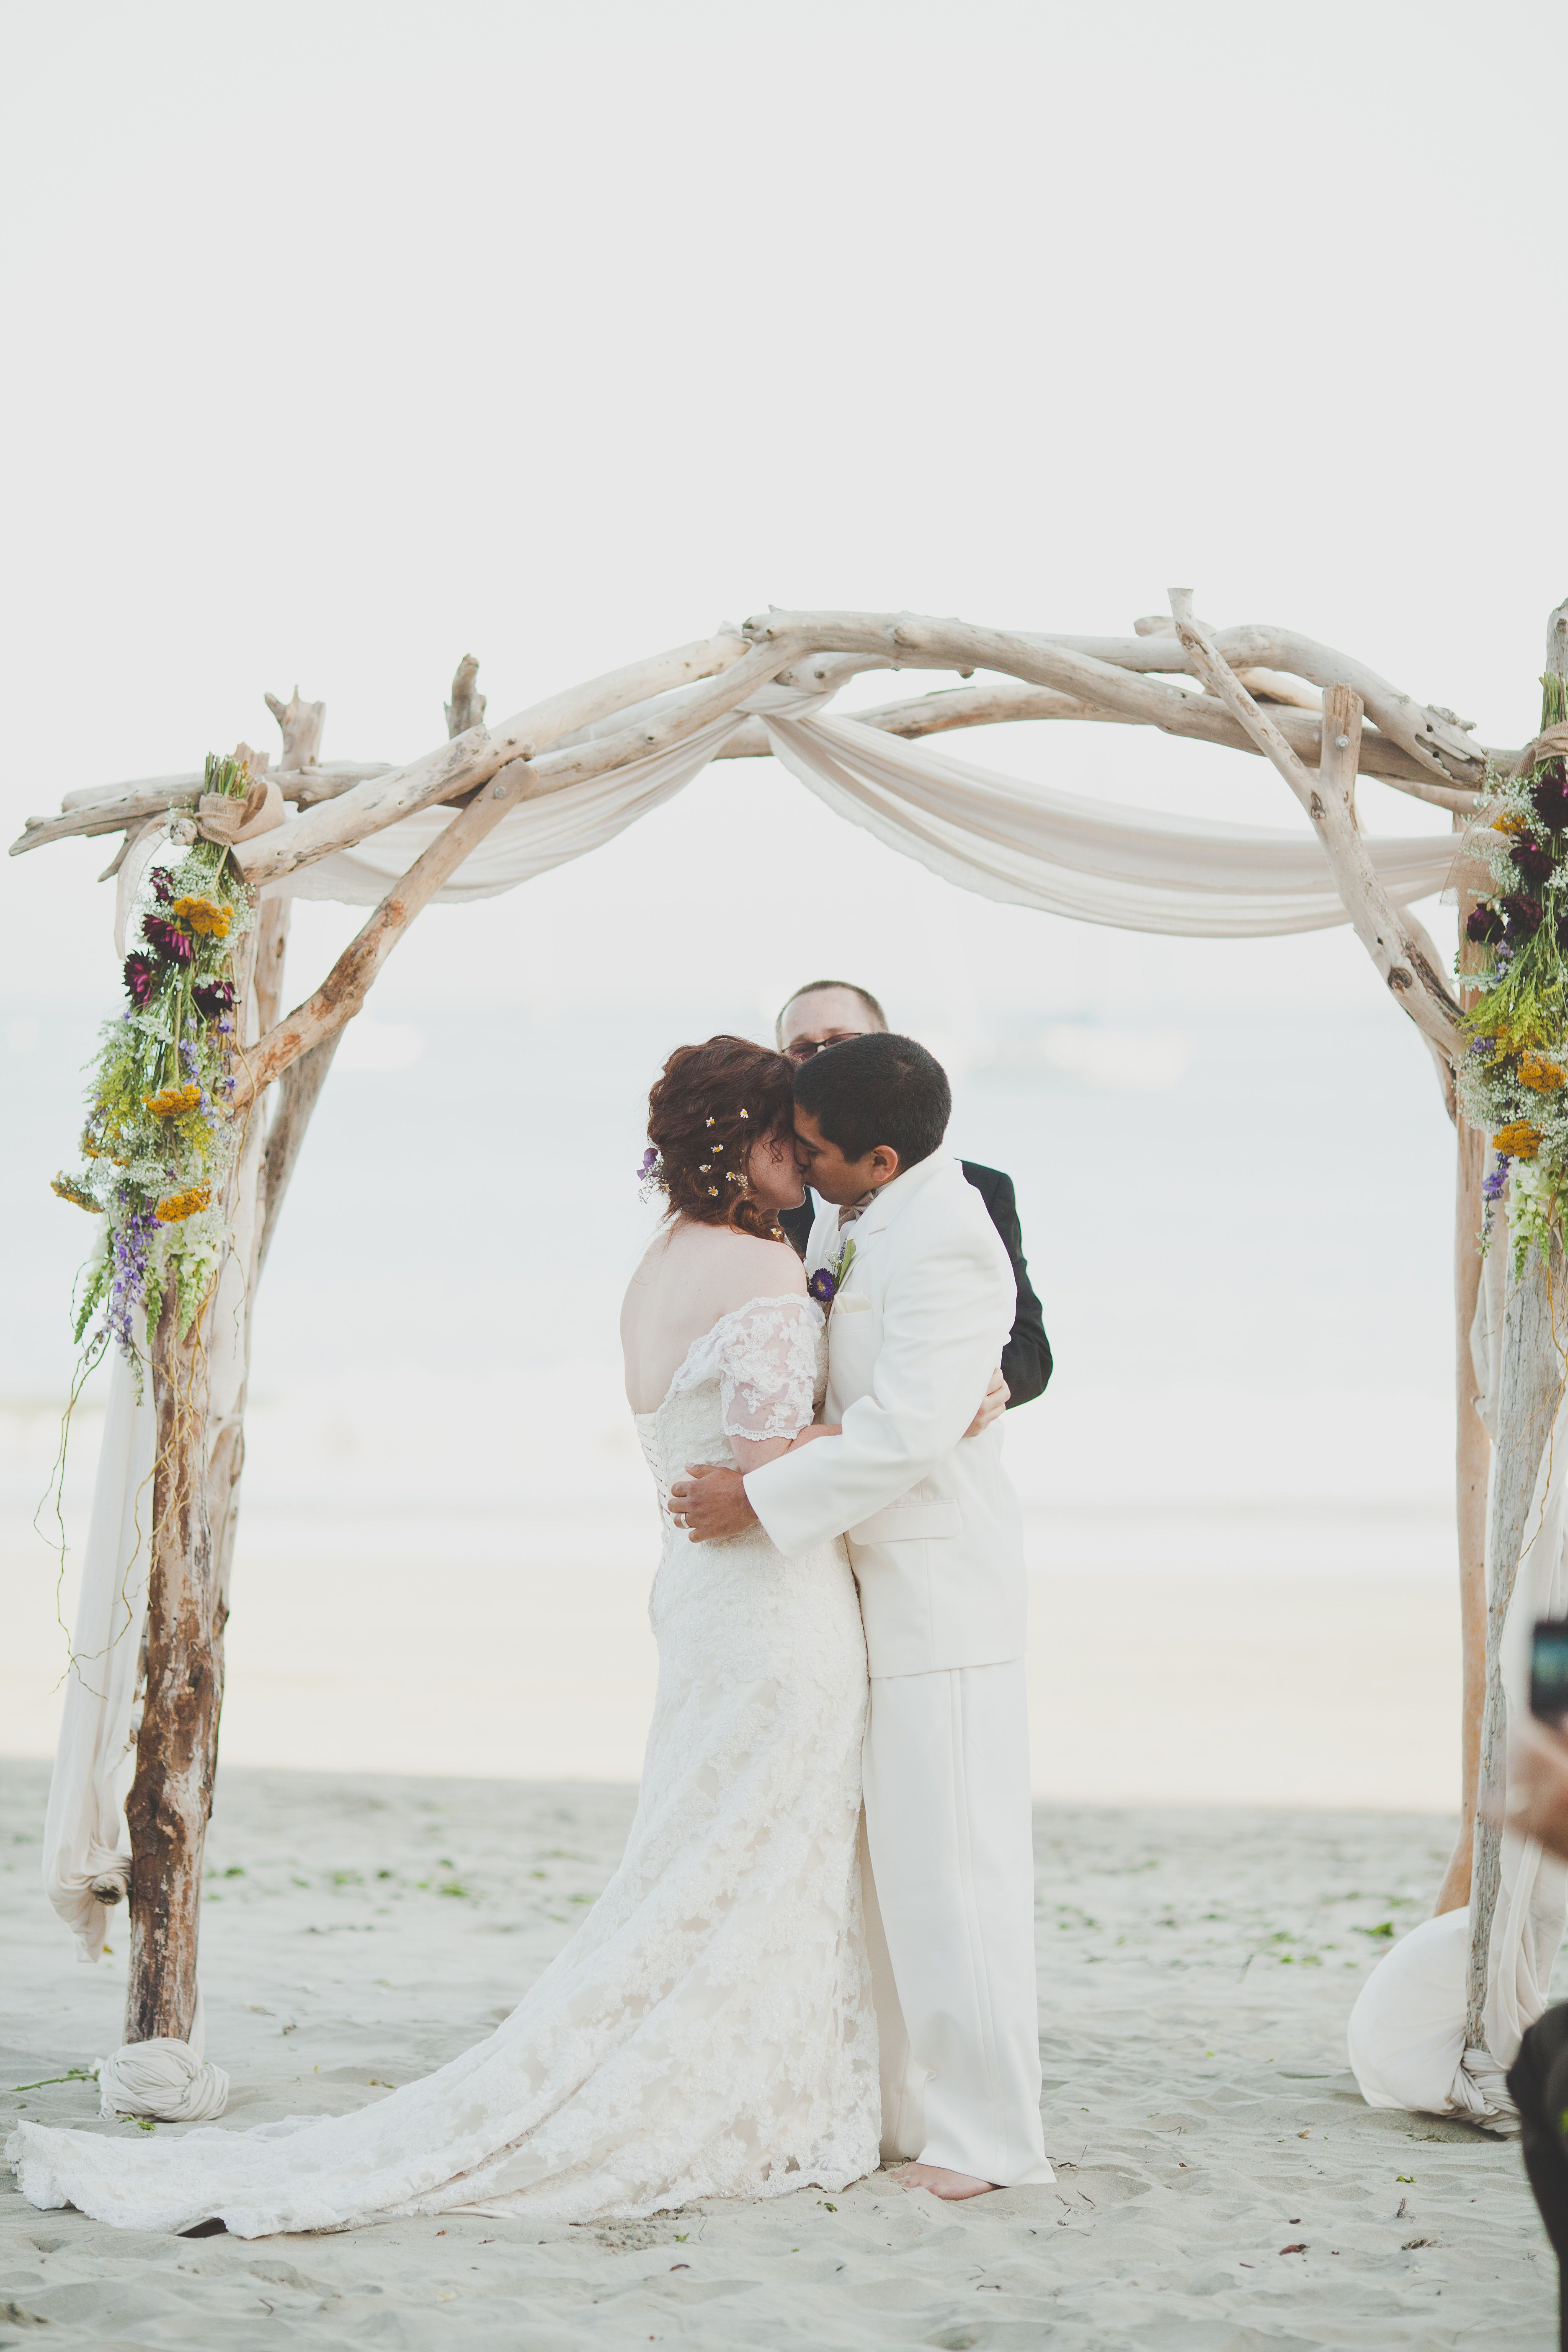 Driftwood Wedding Arbor Arch Altar I Am Making This For A Wedding In May If You D Like To Ren Driftwood Wedding Arbors Driftwood Wedding Beach Wedding Arch